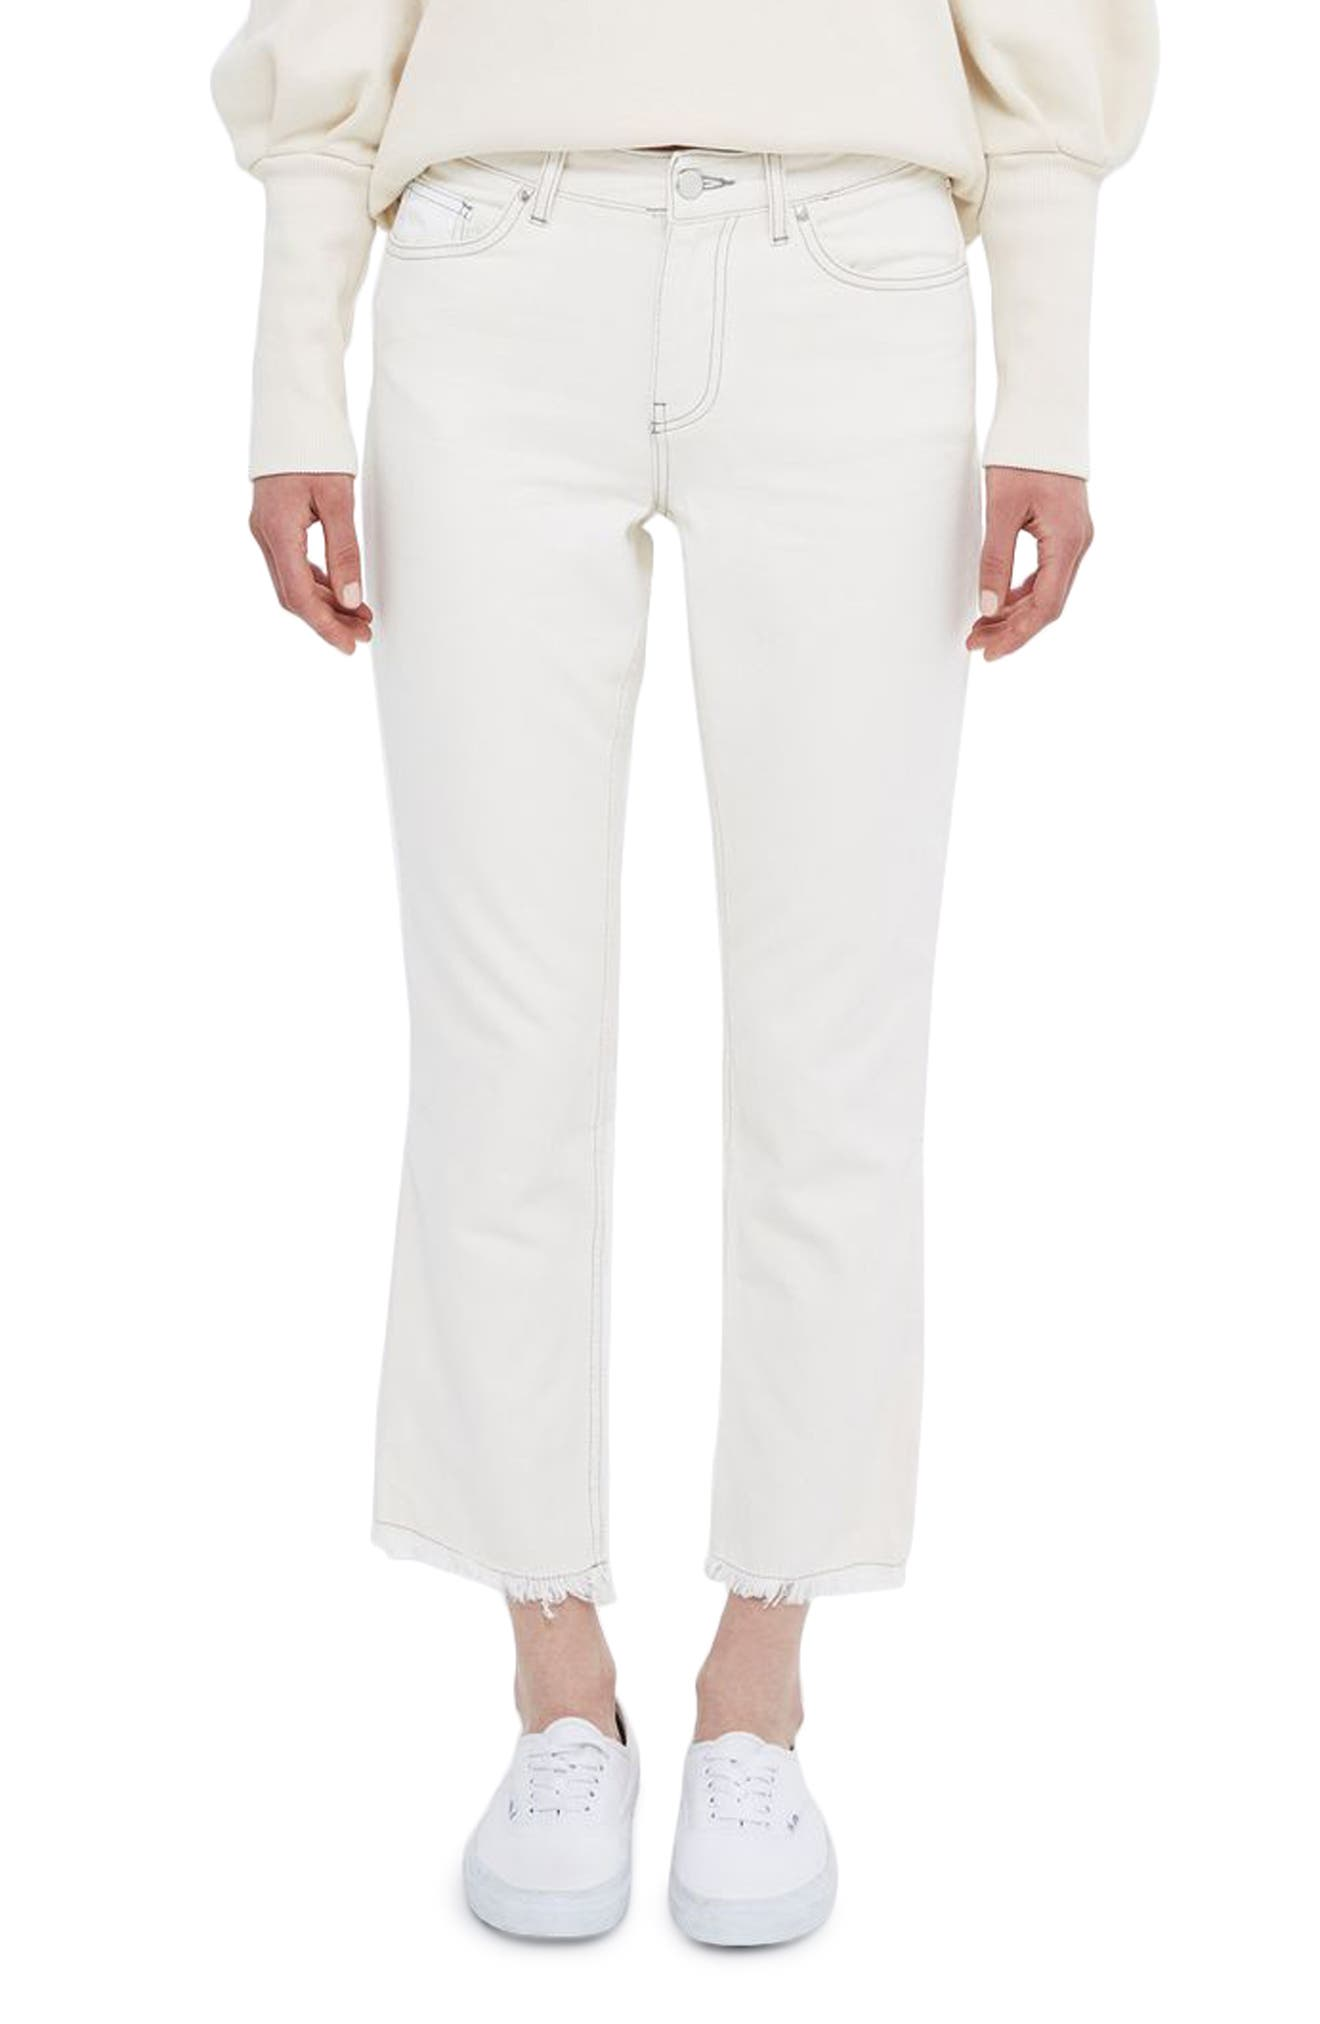 Topshop Boutique Contrast Panel Straight Leg Jeans